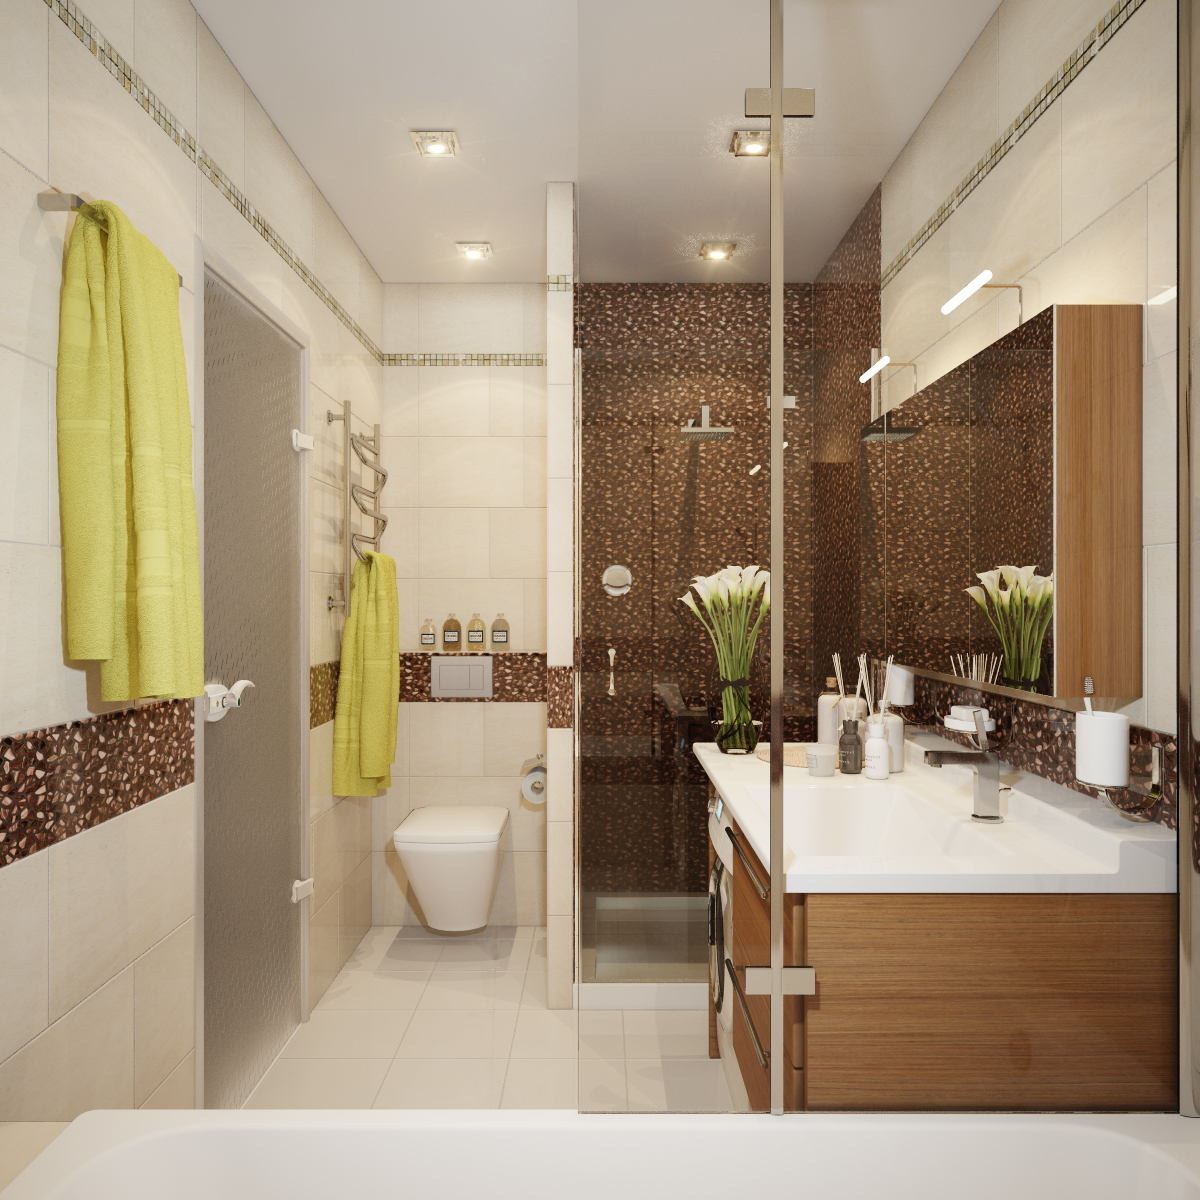 Bathroom Visualization By Happy Irena Interior Design